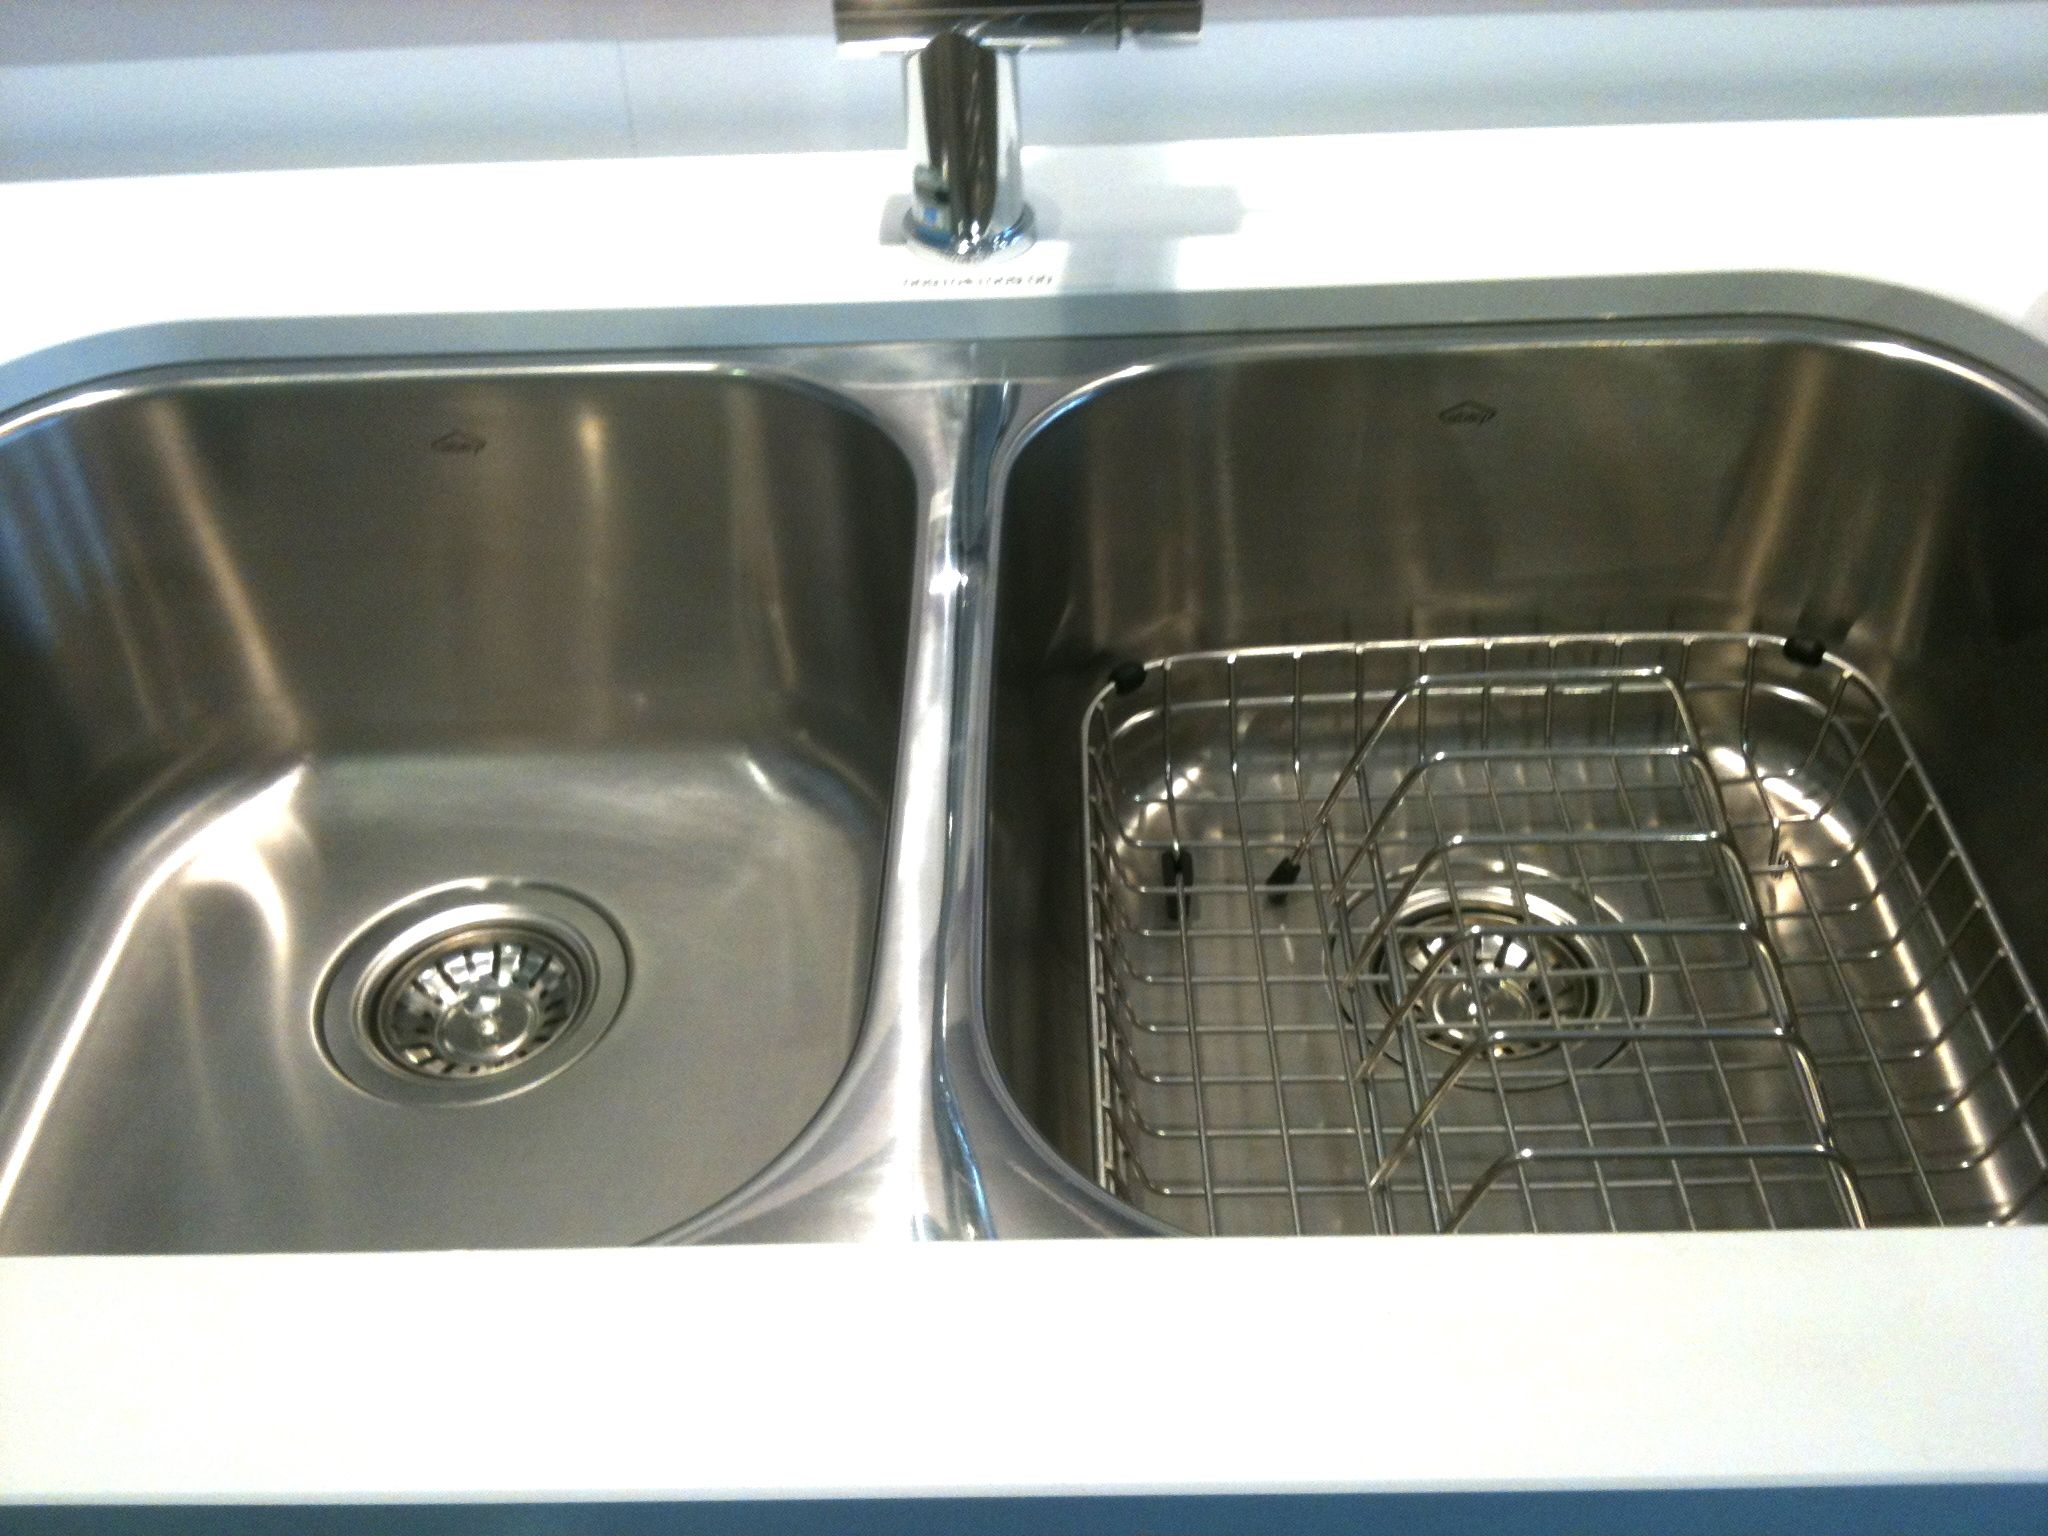 the abey sink in real life that drainer costs extra - Abey Kitchen Sinks